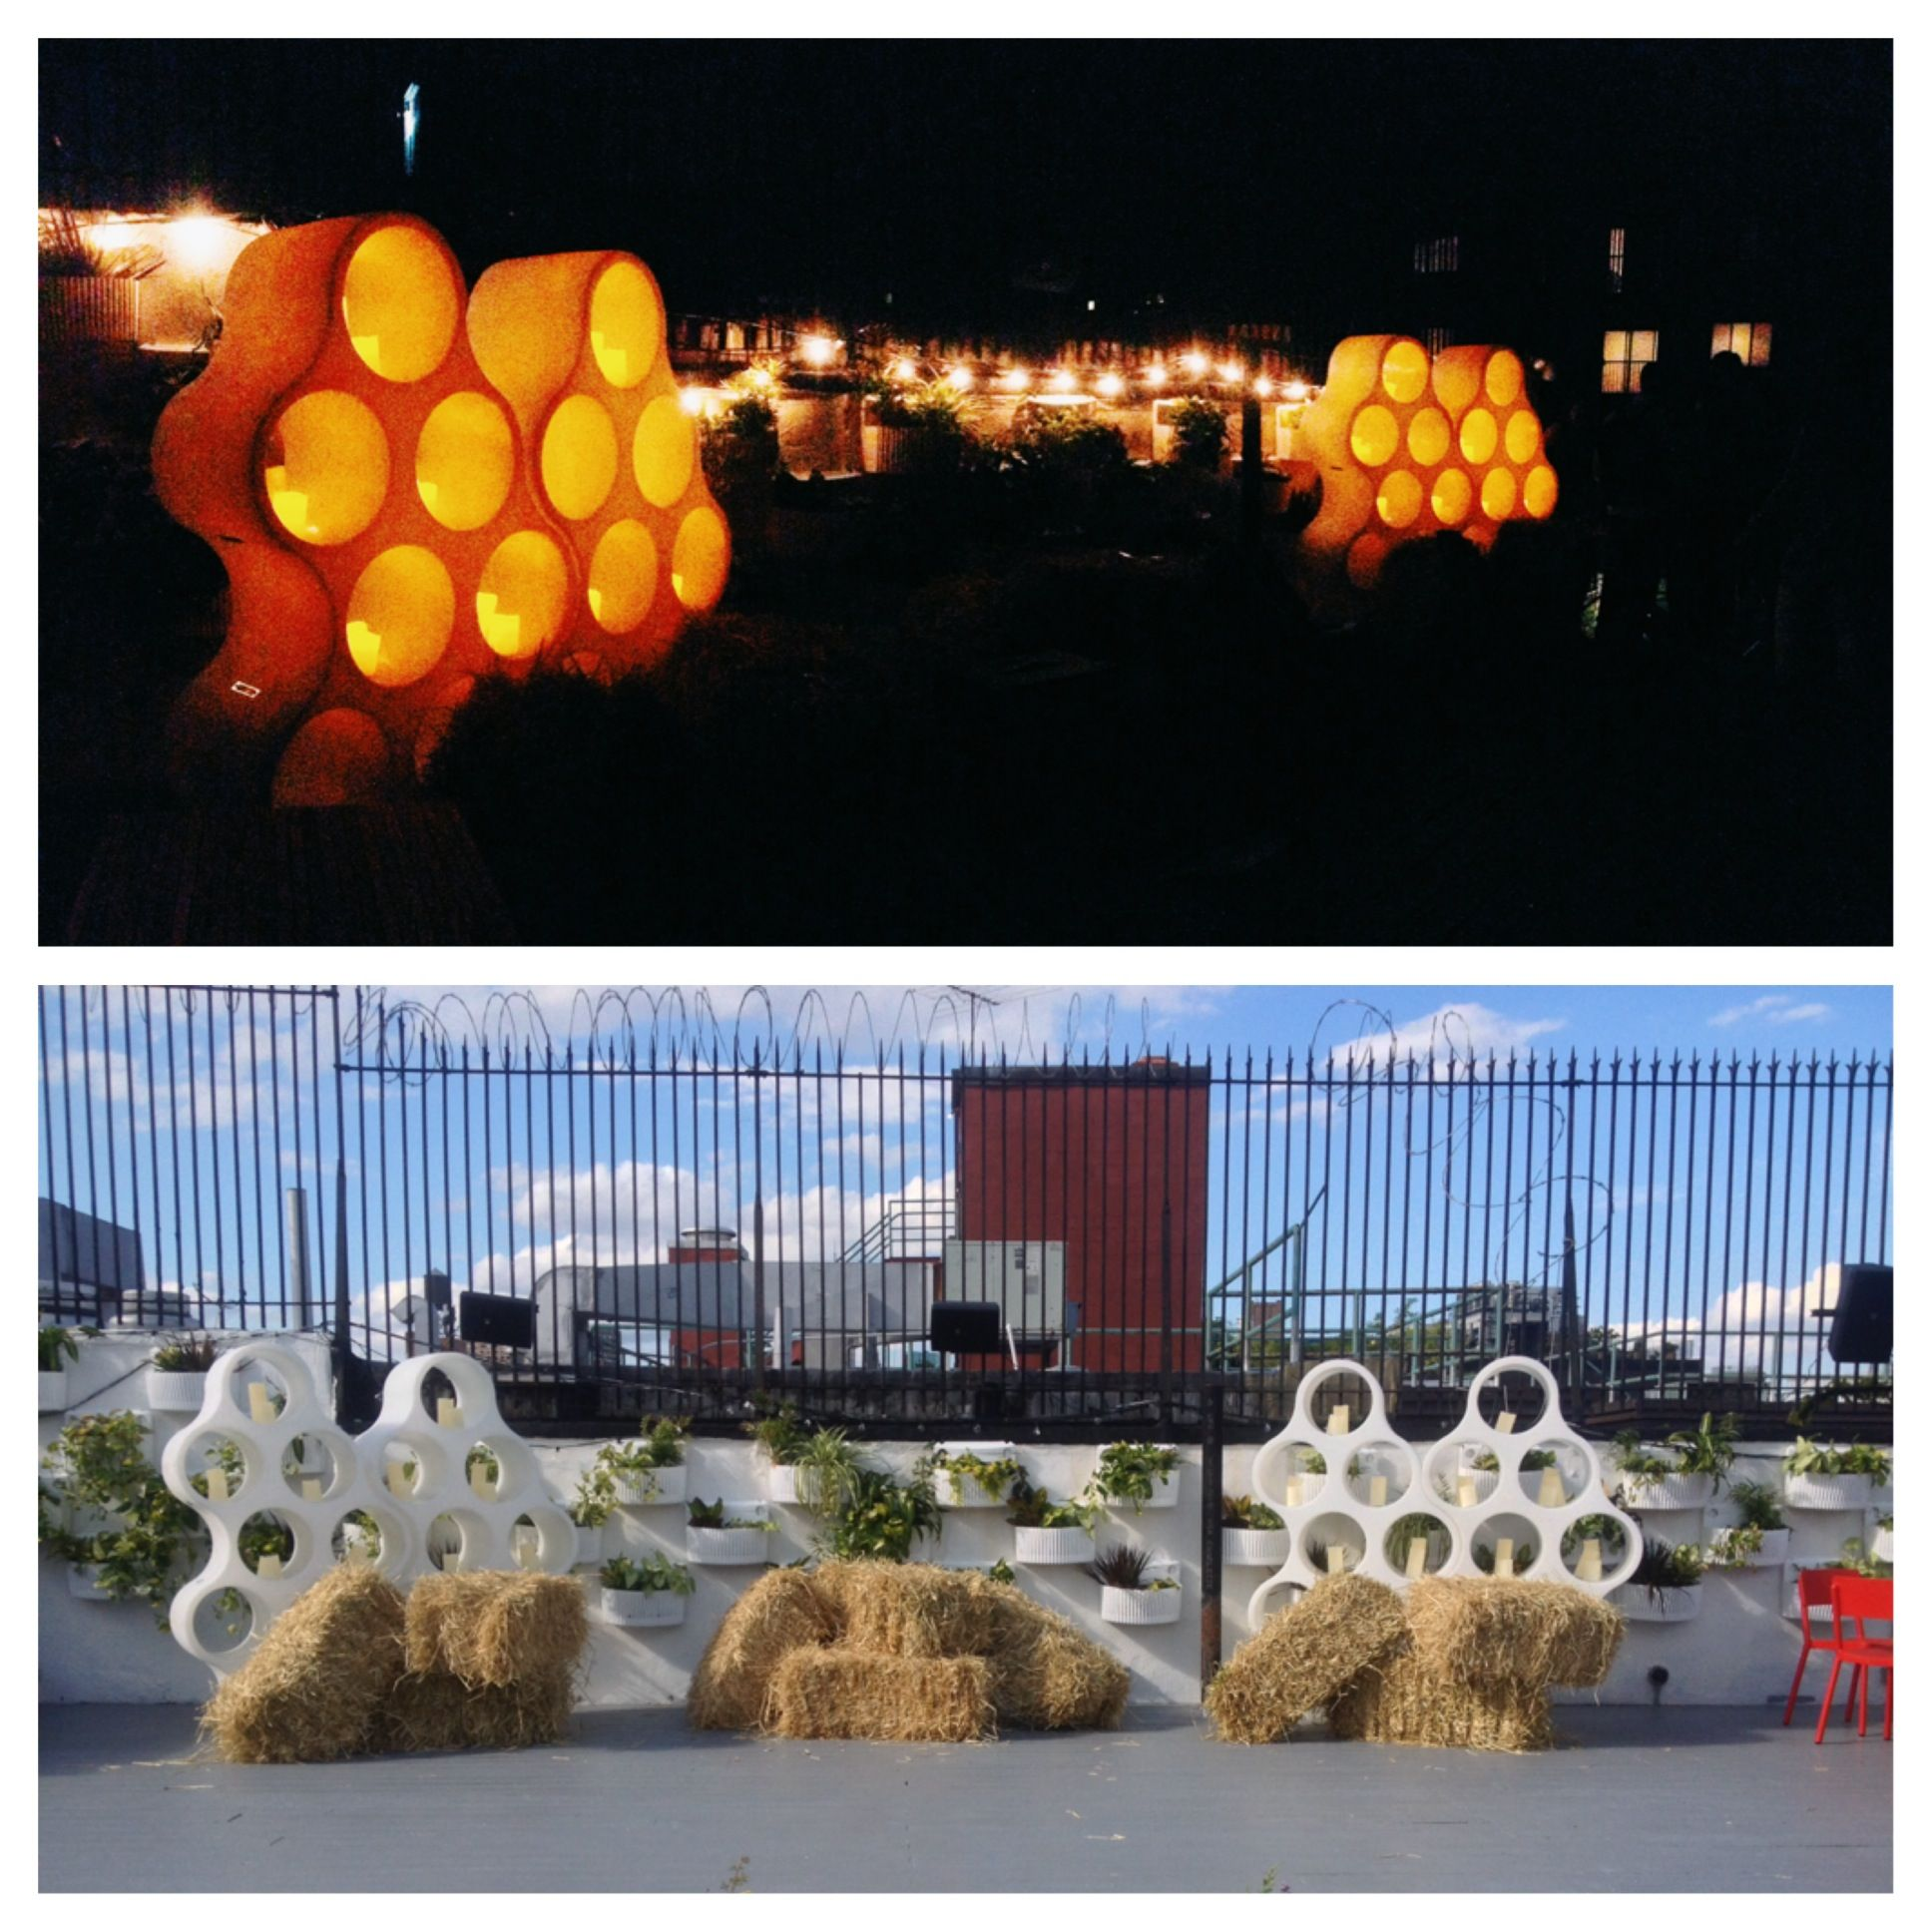 Day and Night-- Honey themed event, honeycomb-shaped cabinets with candles. Hay bales for rustic accents.